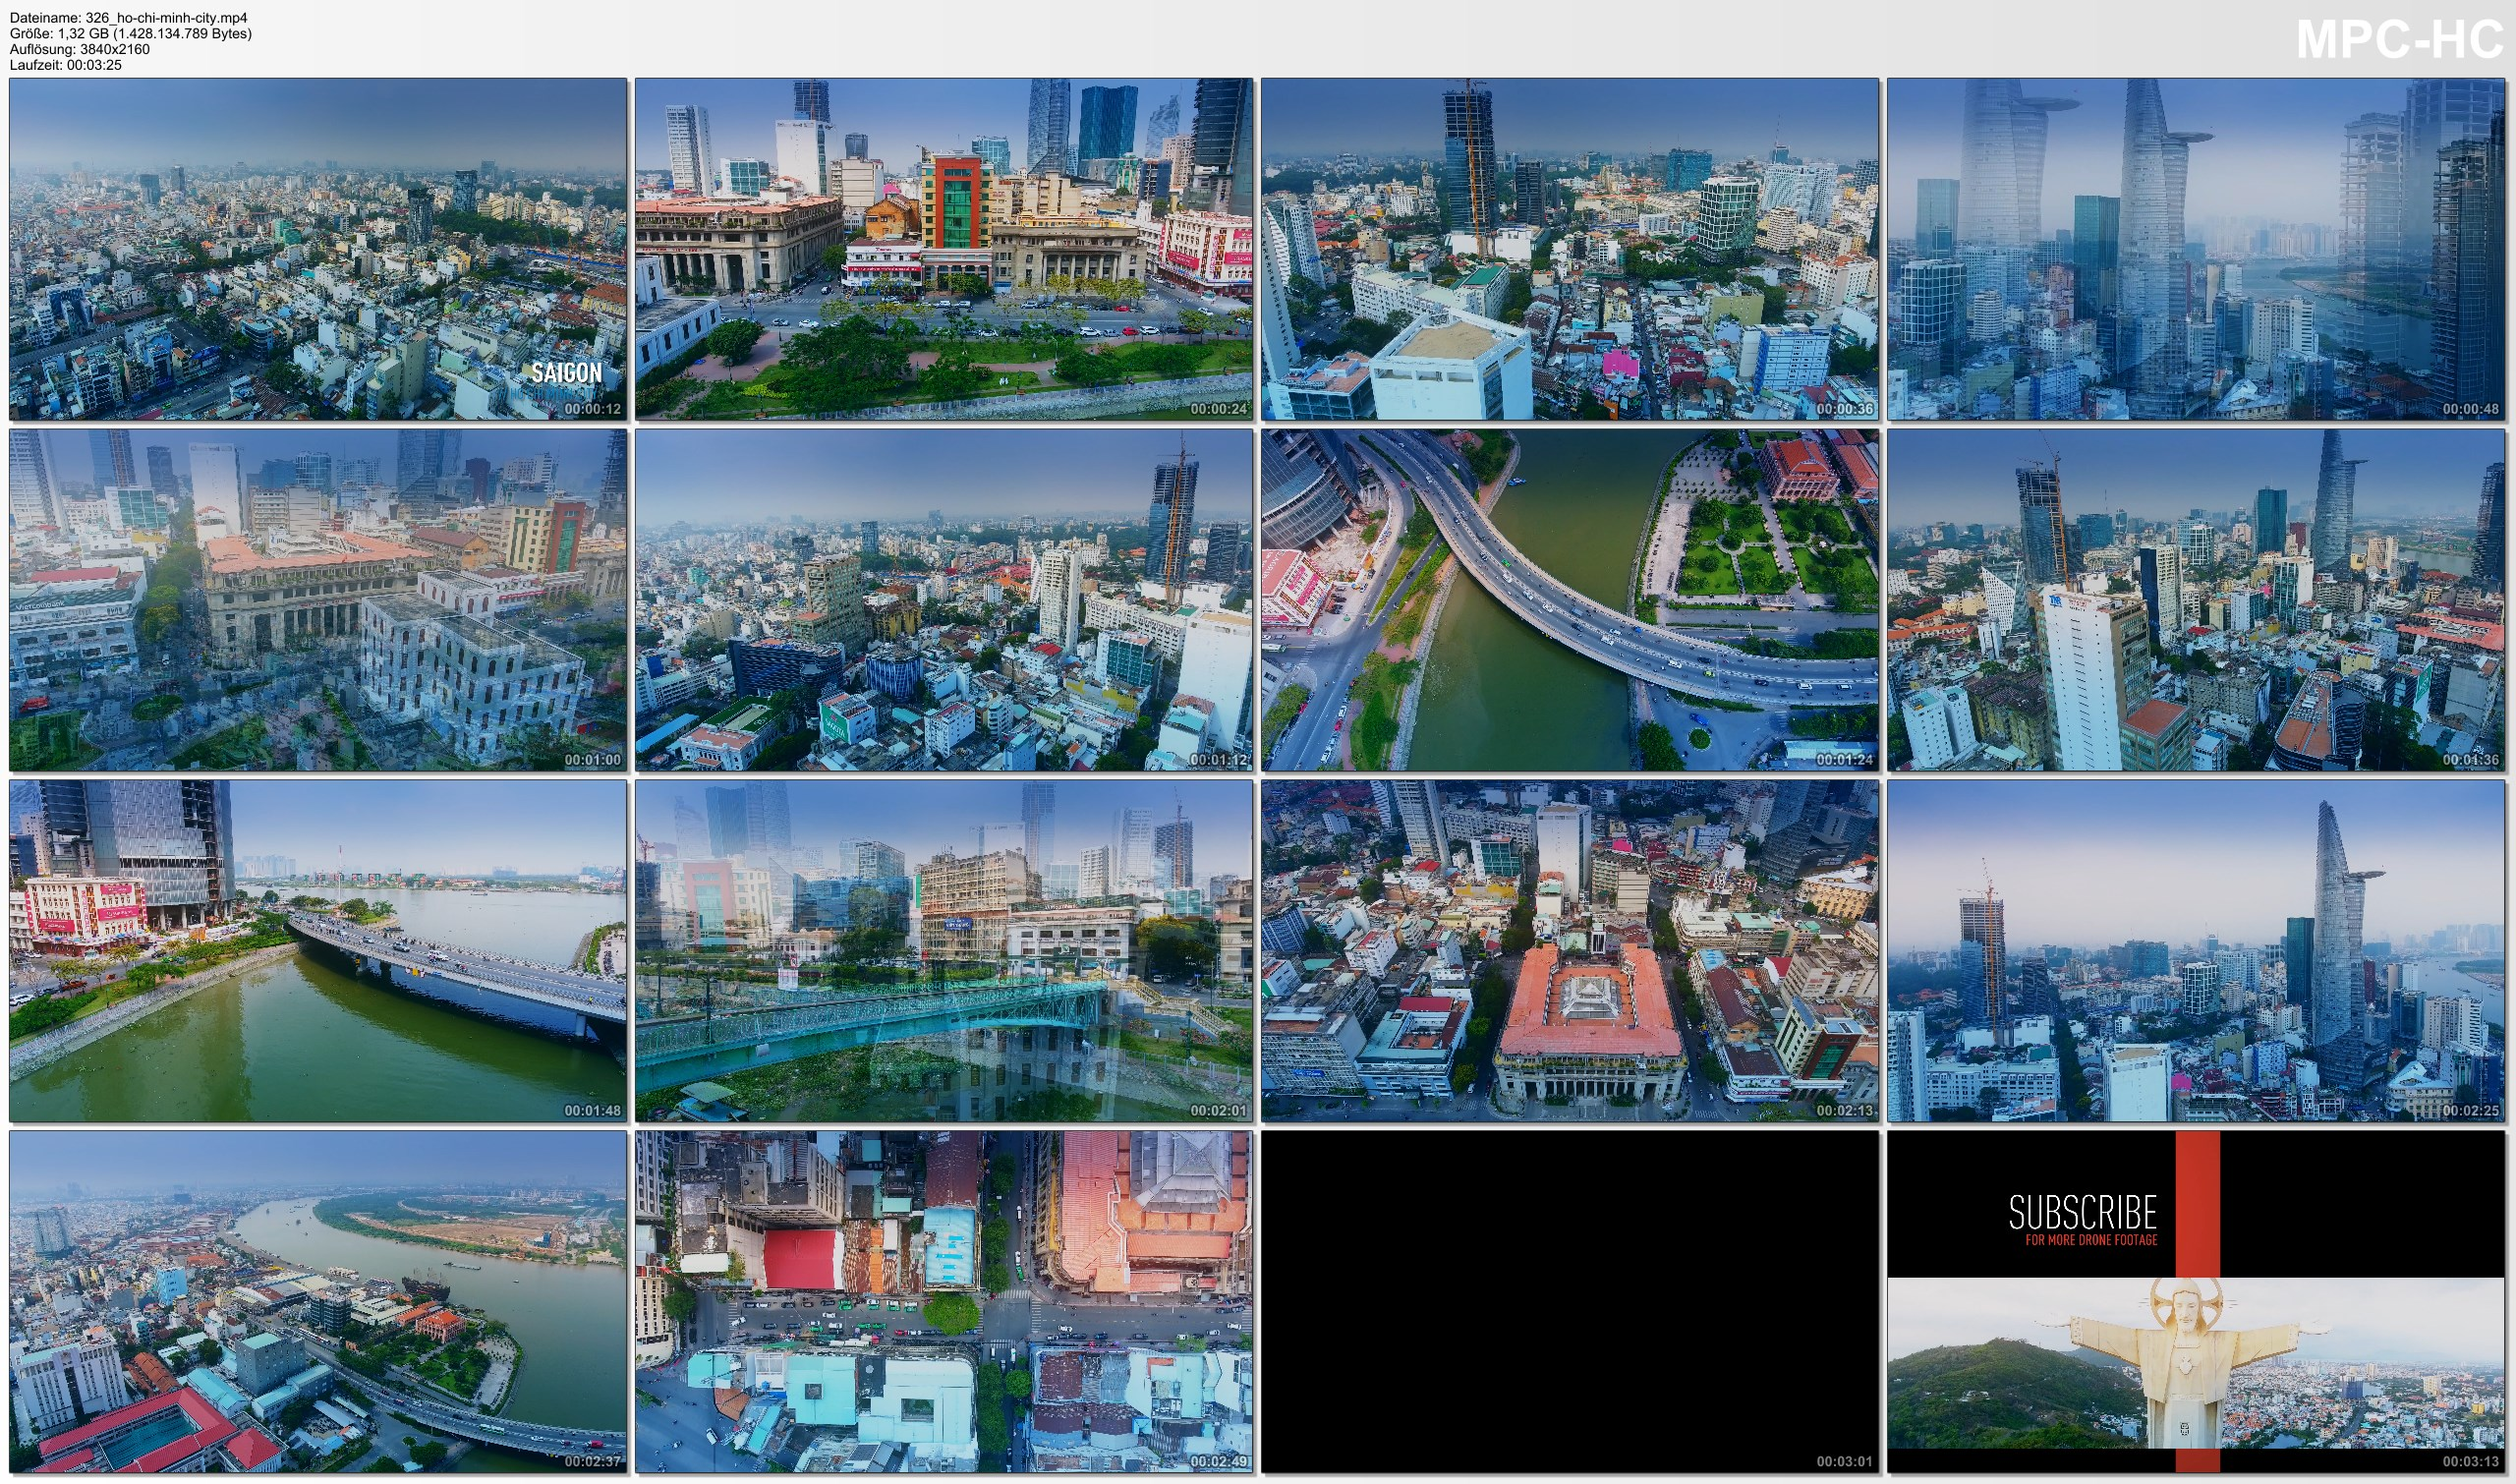 Drone Pictures from Video 【4K】Drone Footage | Ho Chi Minh City - Saigon Birds View | Vietnam 2019 | Cinematic Aerial HCMC Film